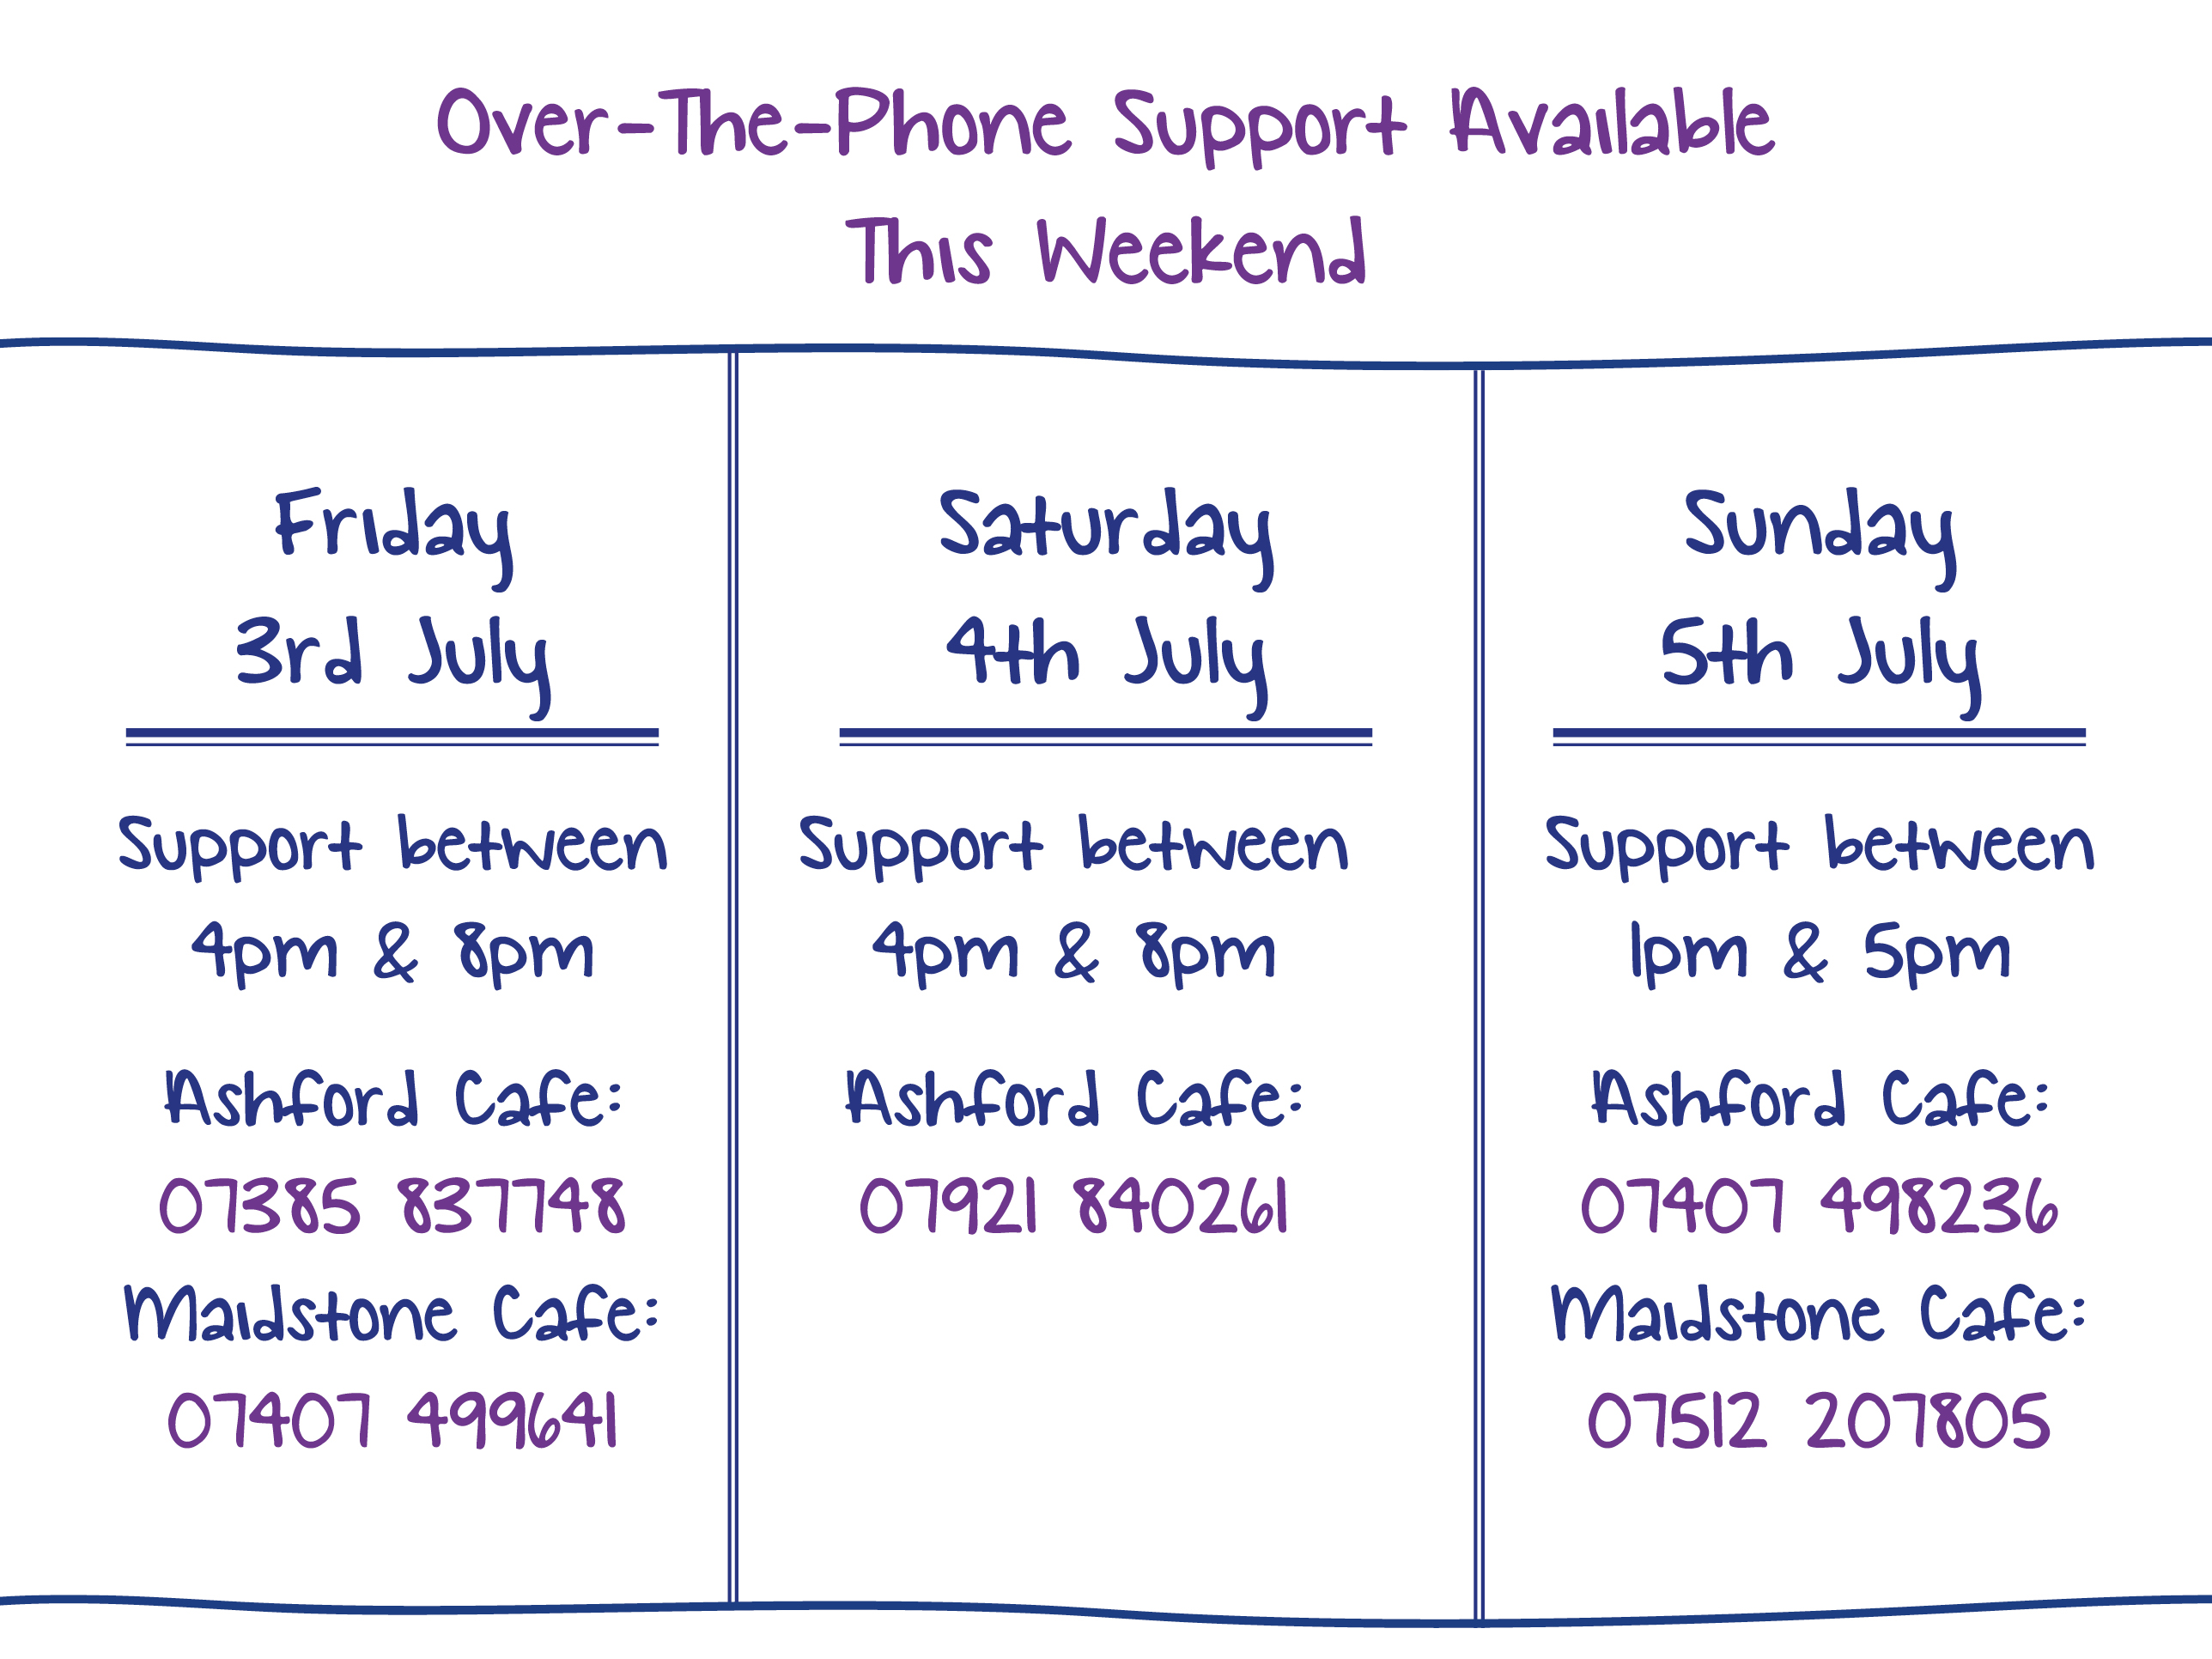 Over-The-Phone Support Available This Weekend. Friday 3rd July. Support between 4pm & 8pm Ashford Cafe: 07385 837748 Maidstone Cafe: 07407 499641.